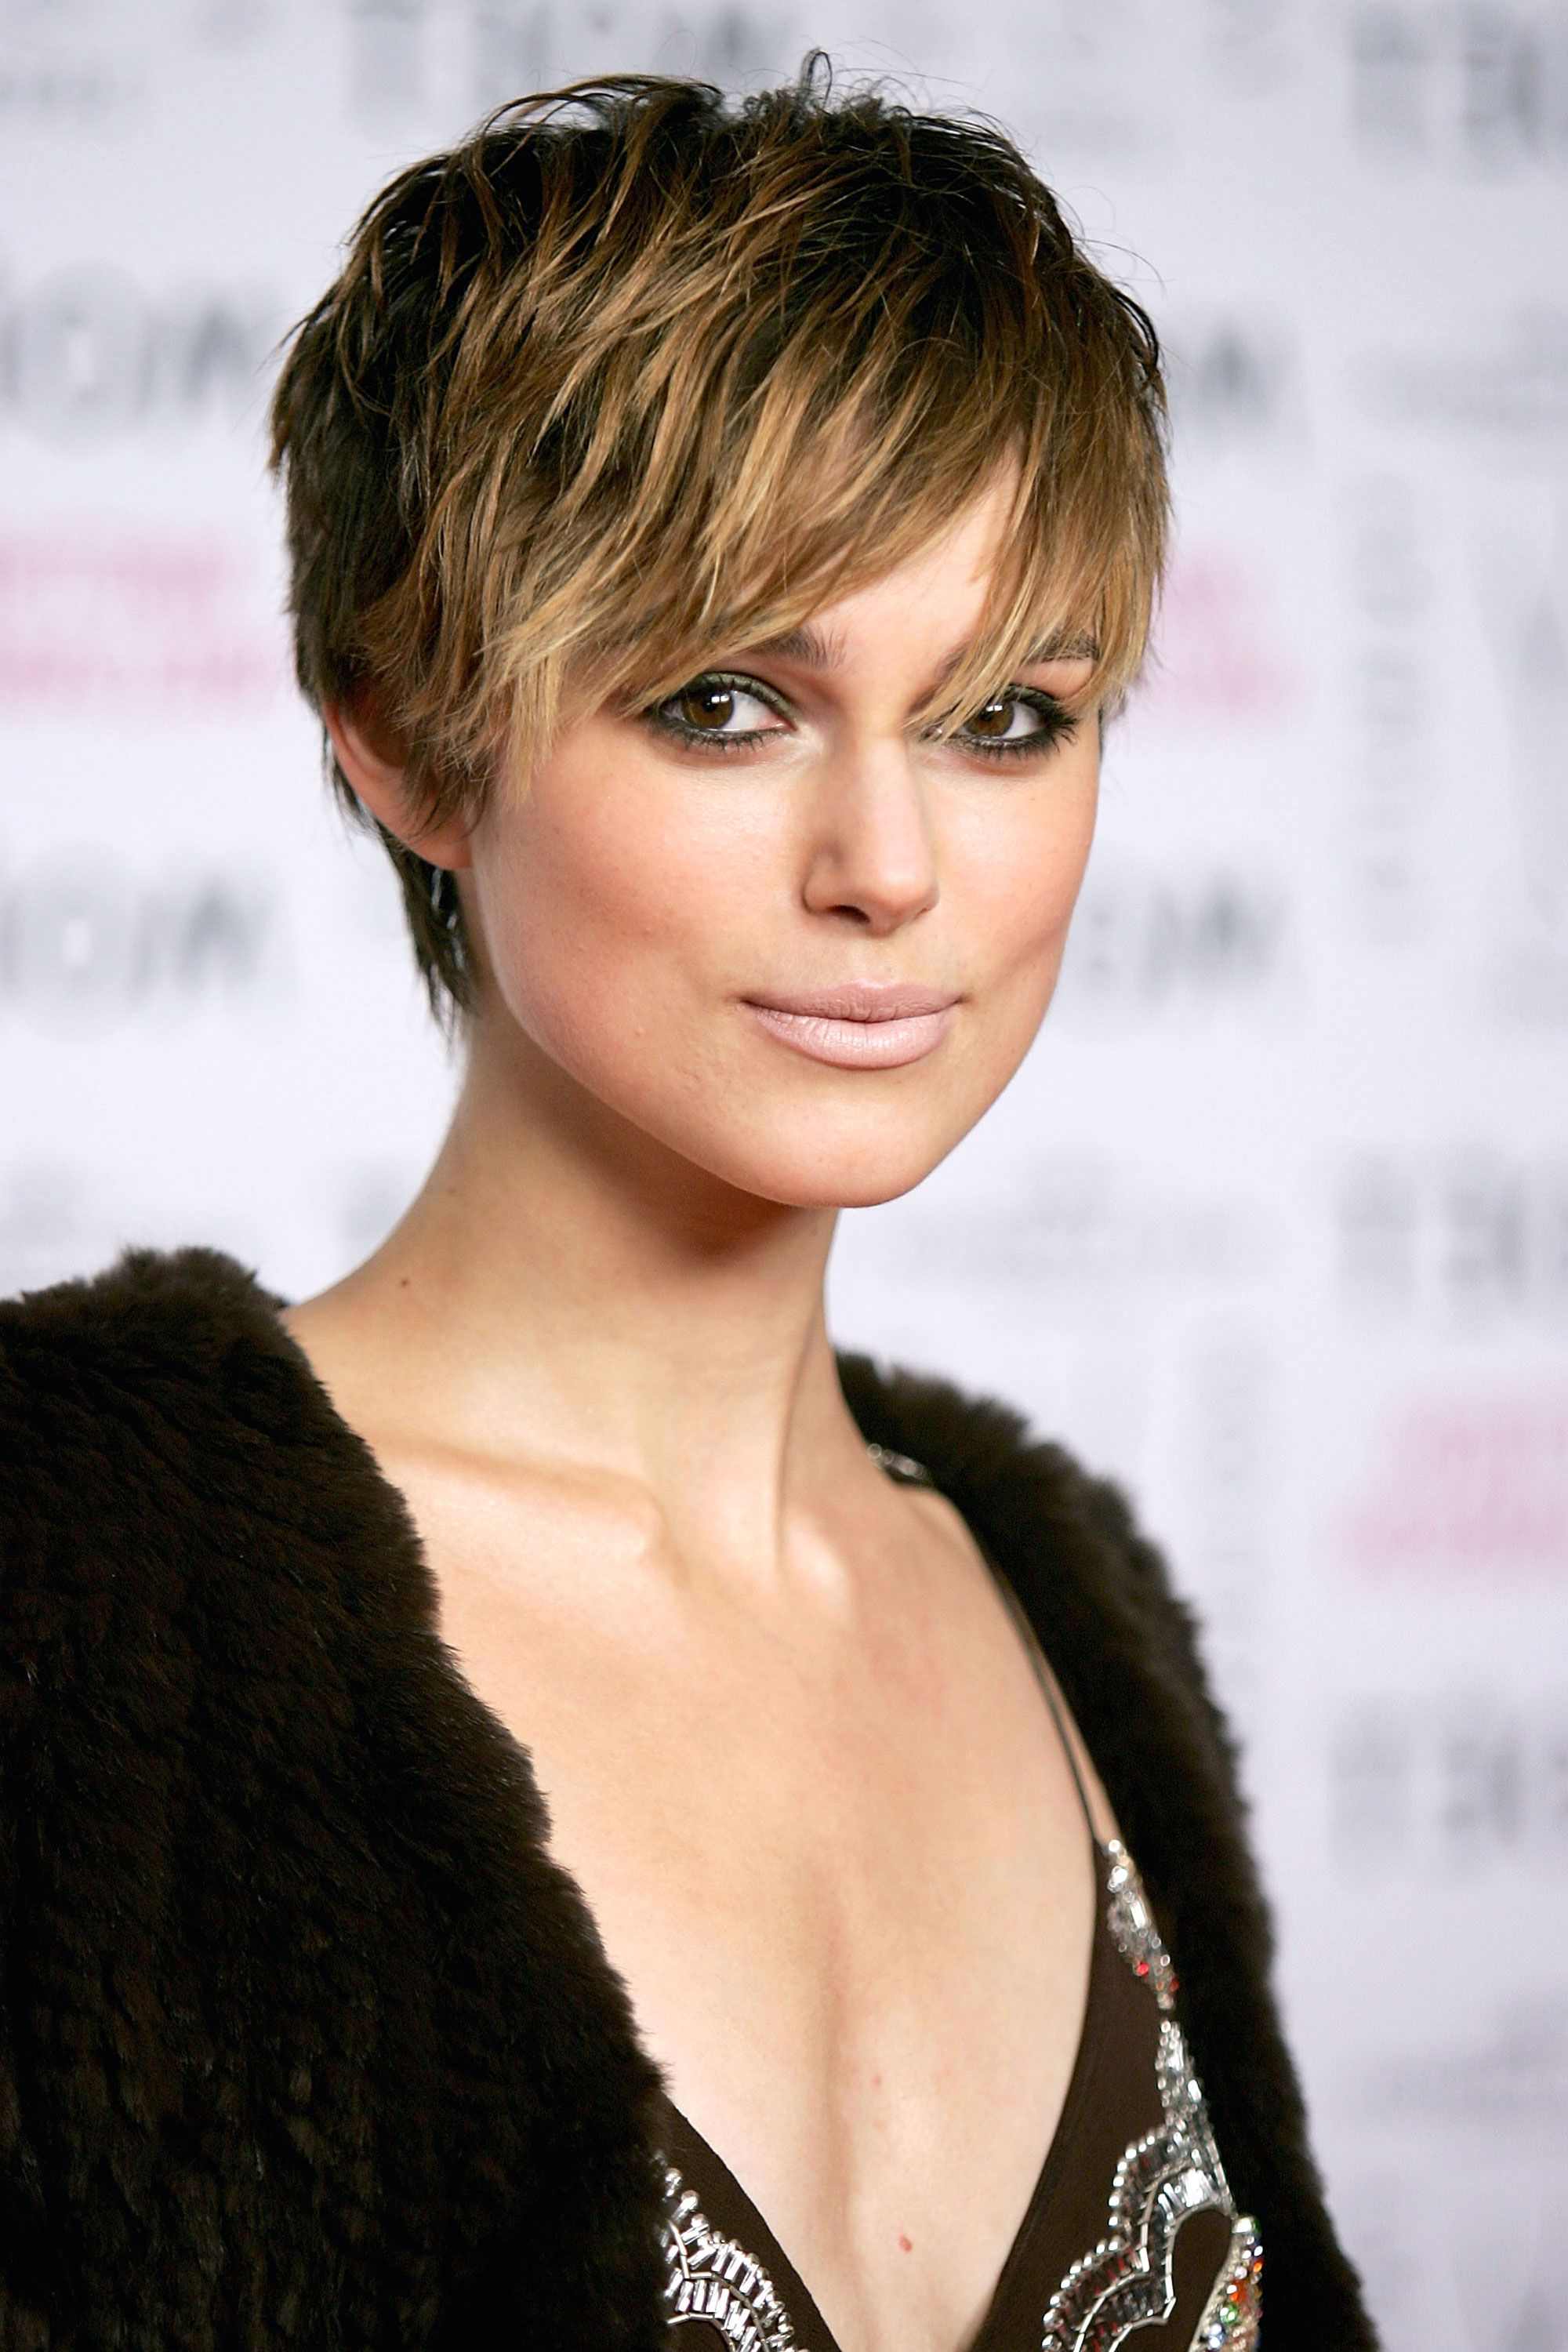 50+ Pixie Cuts We Love For 2018 – Short Pixie Hairstyles From Inside Pixie Bob Hairstyles With Soft Blonde Highlights (View 12 of 20)